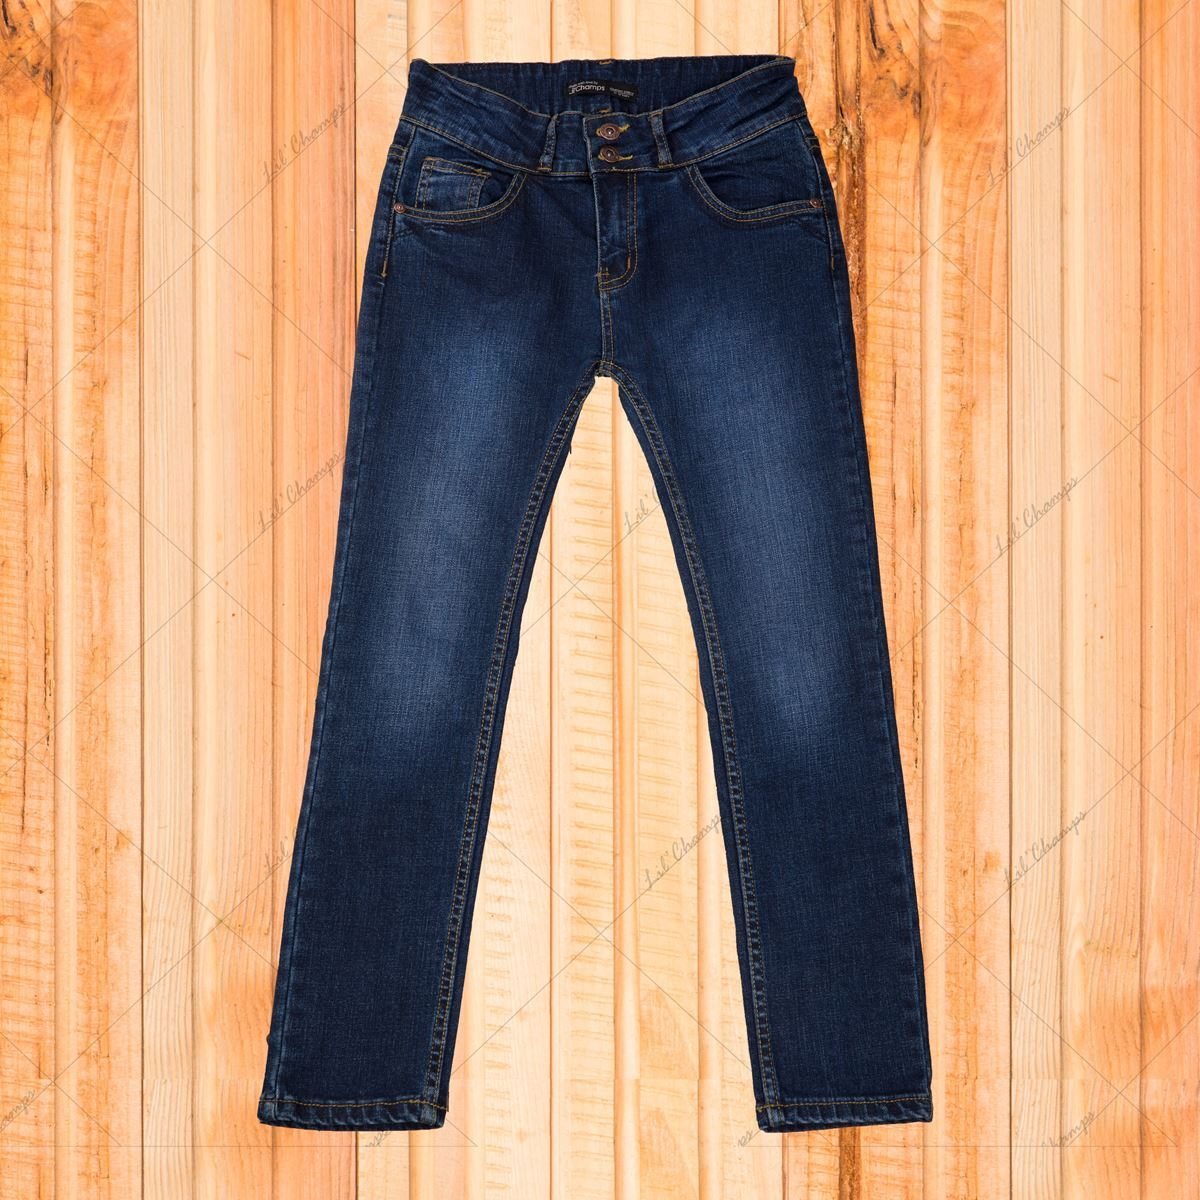 Girls Stylish Jeans in Regular Fit-Lilchamps